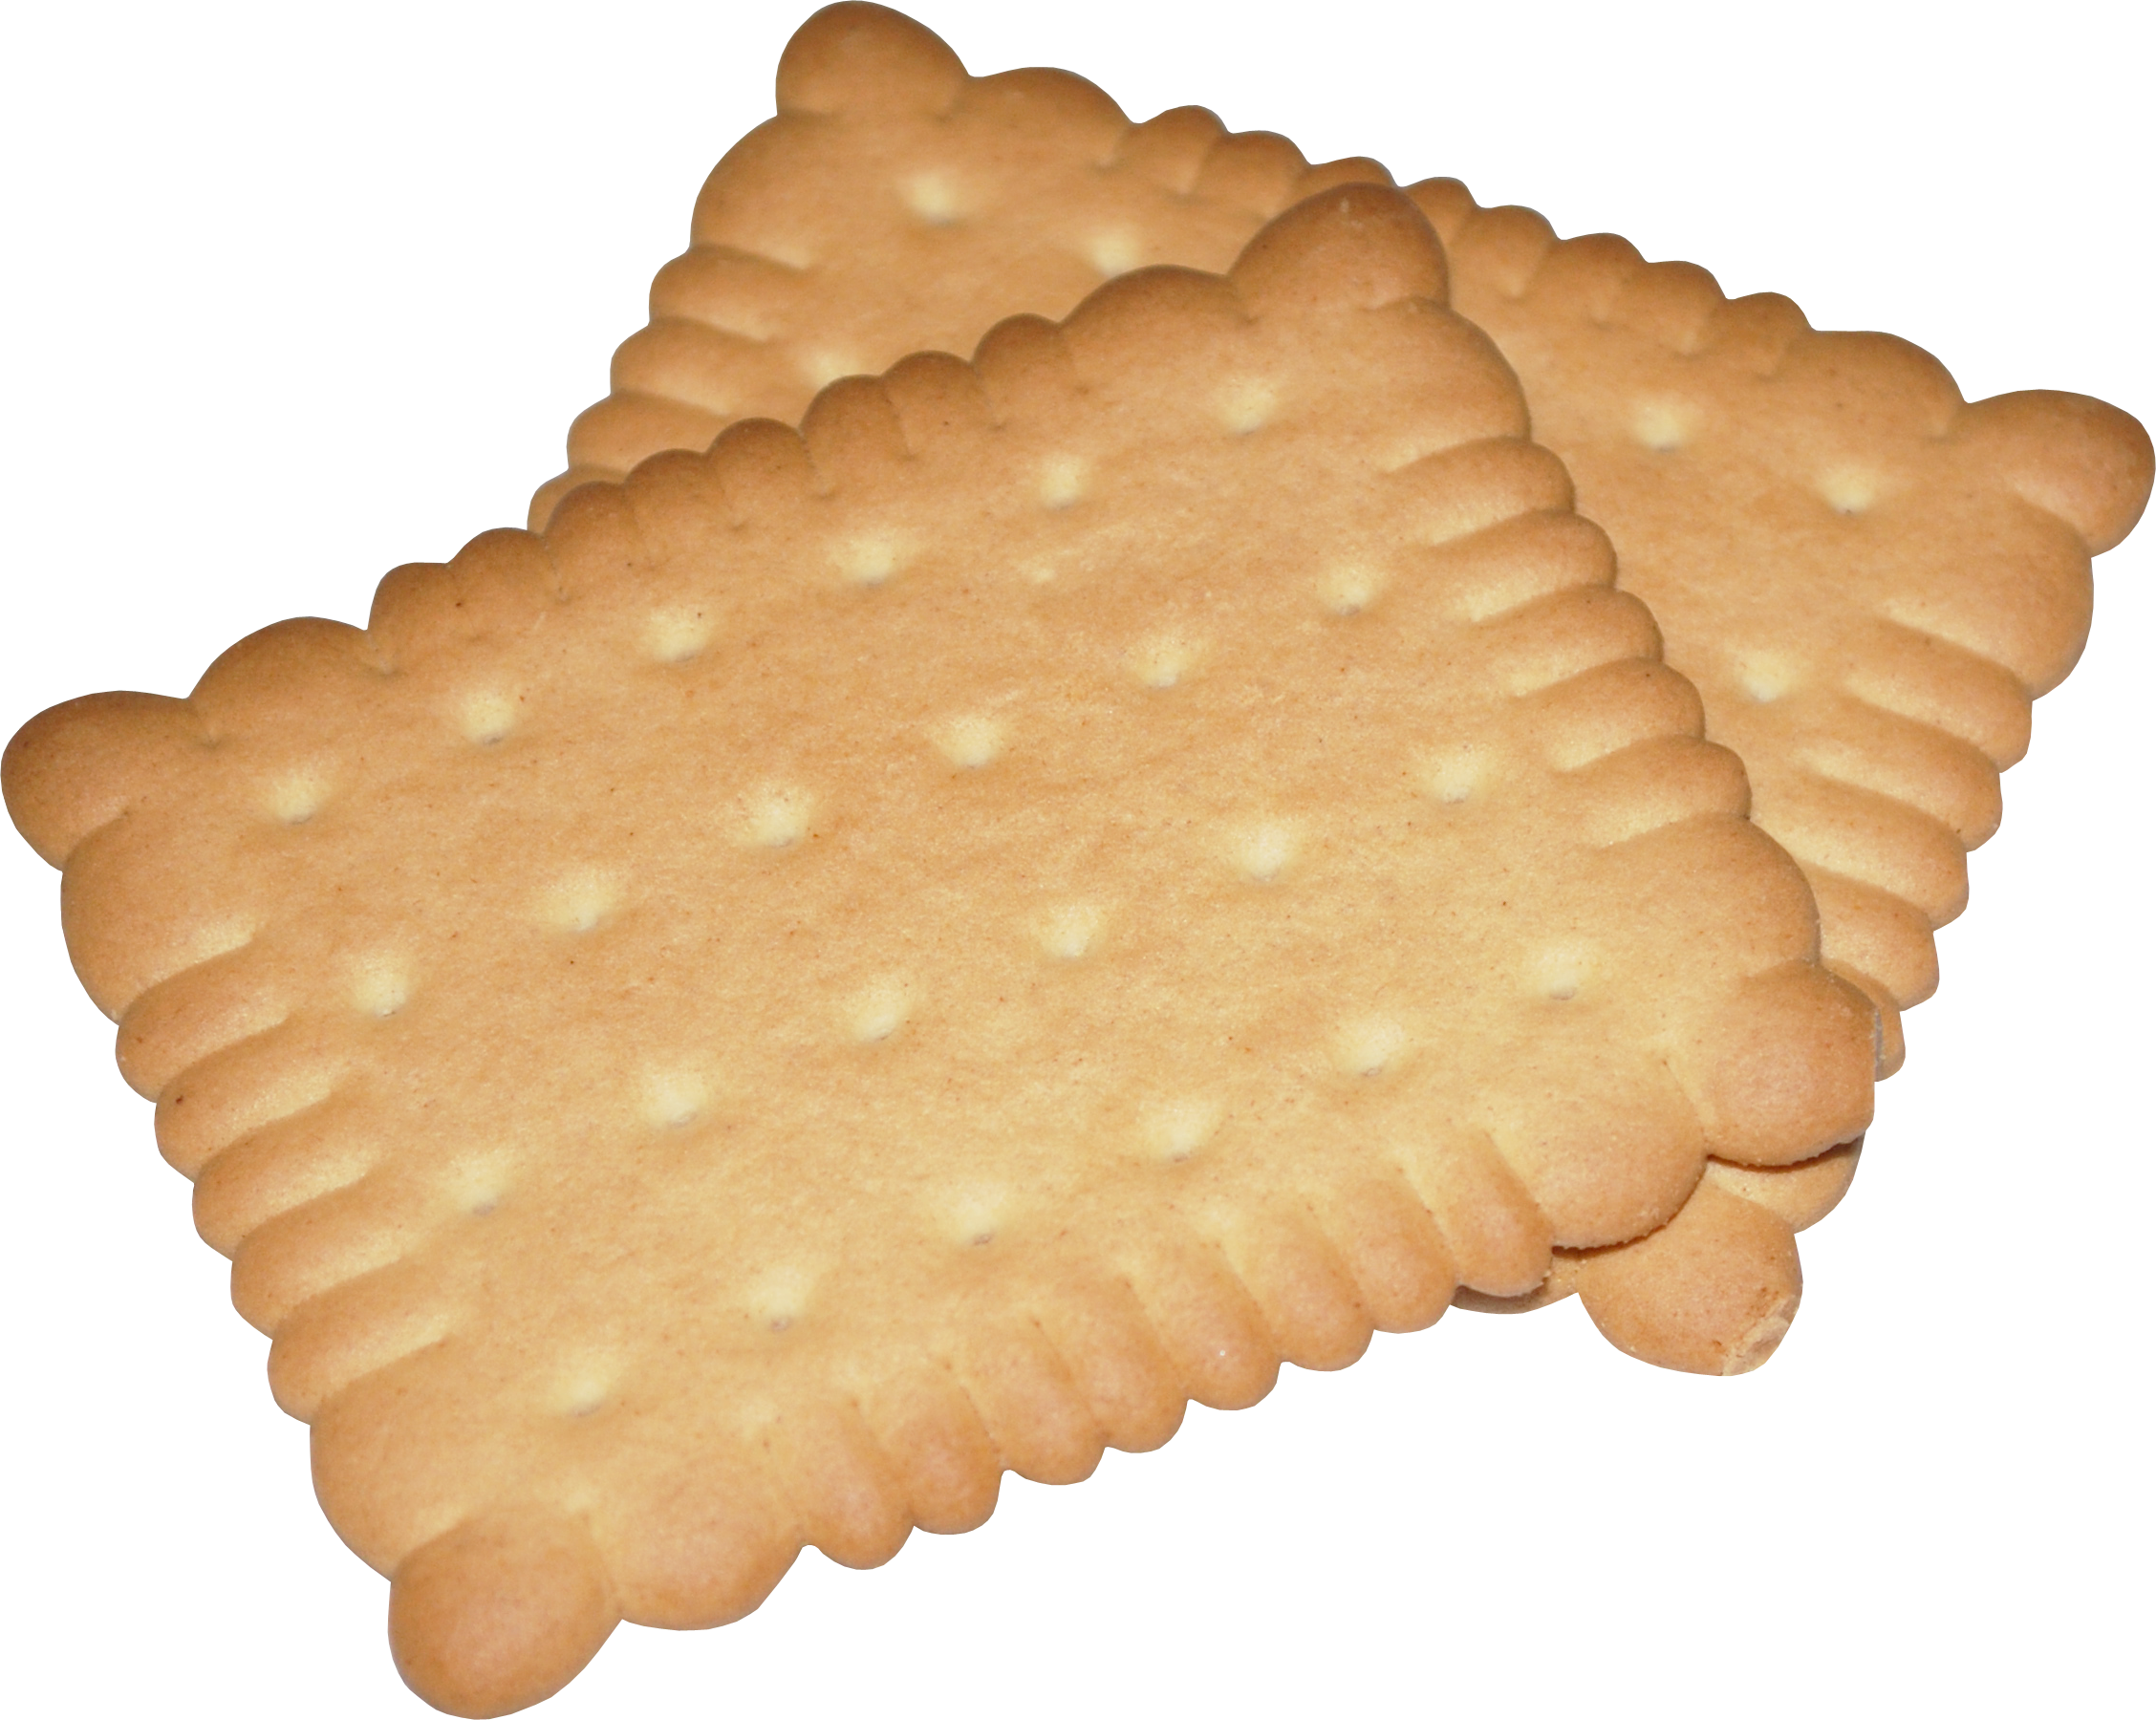 Cookies clipart transparent background. Leipniz cookie png image